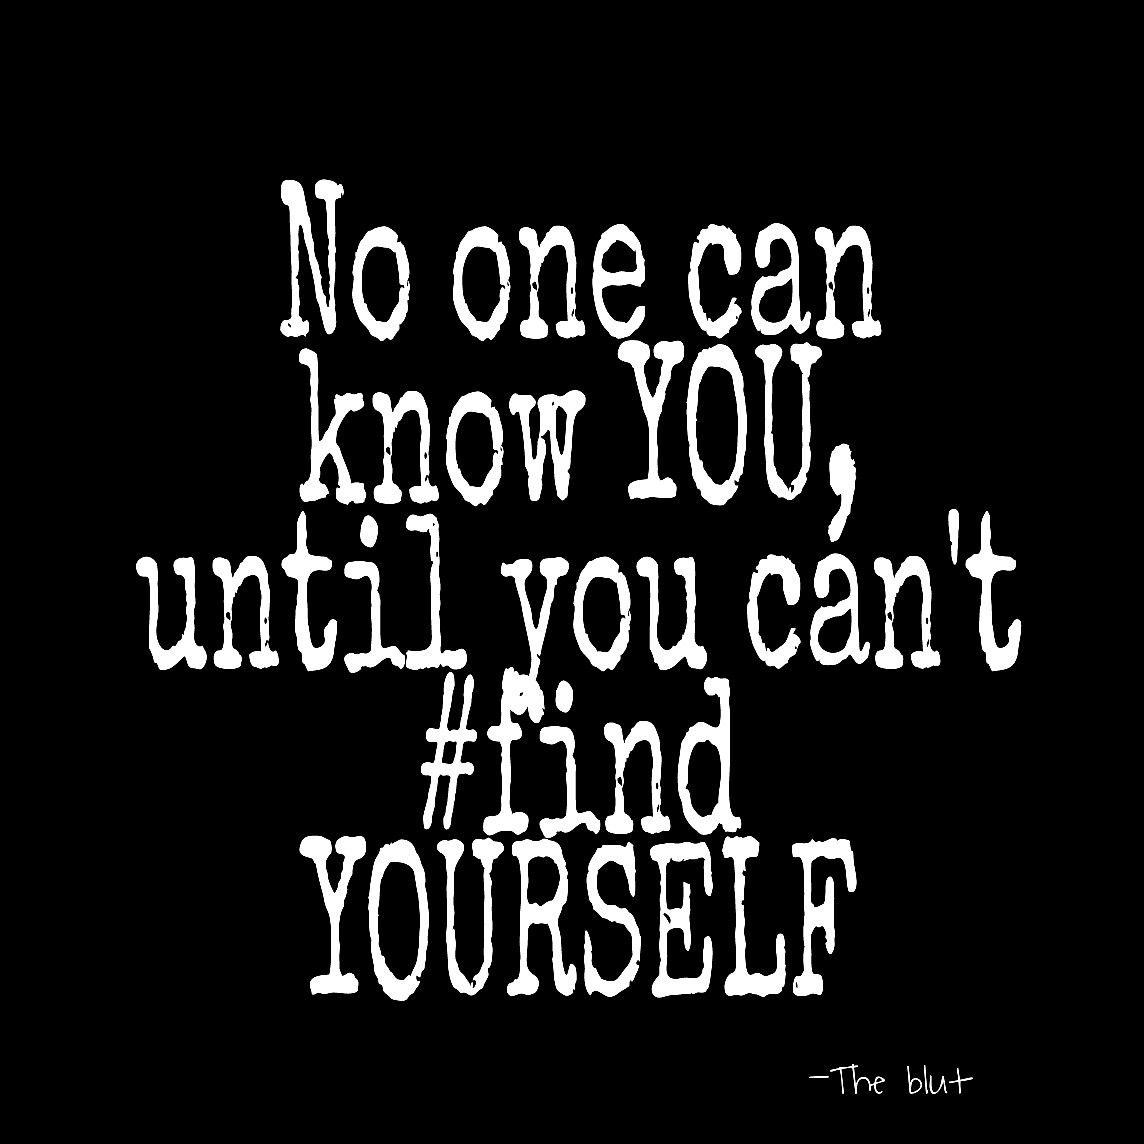 Philosophy In Life Quotes No One Can Know You Until You Can't Find Yourselfphilosophy